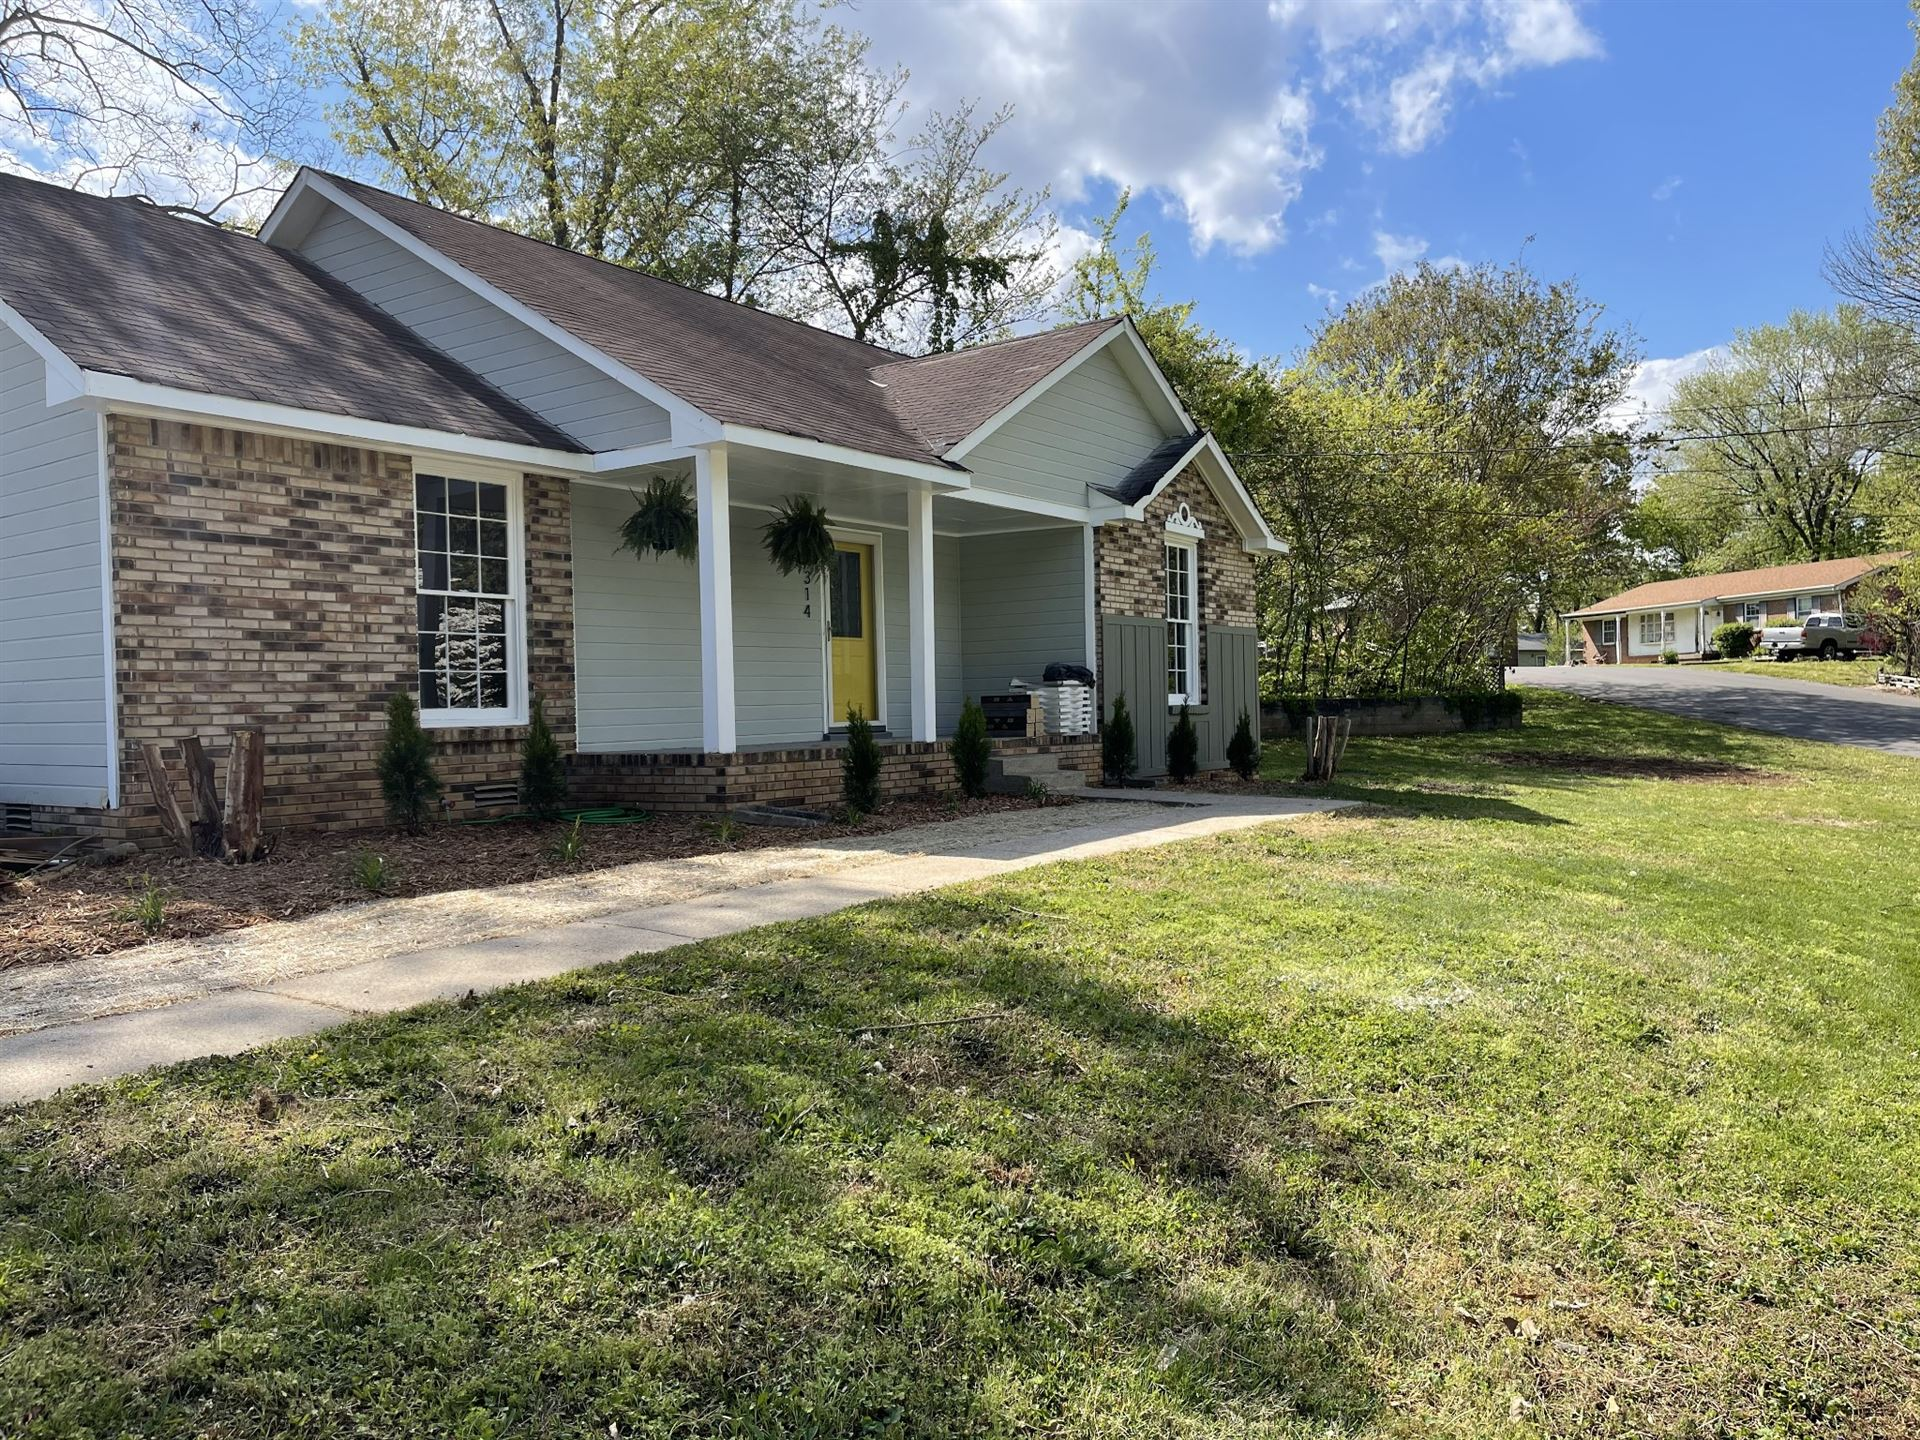 314 Southern Dr, Clarksville, TN 37042 - MLS#: 2244644